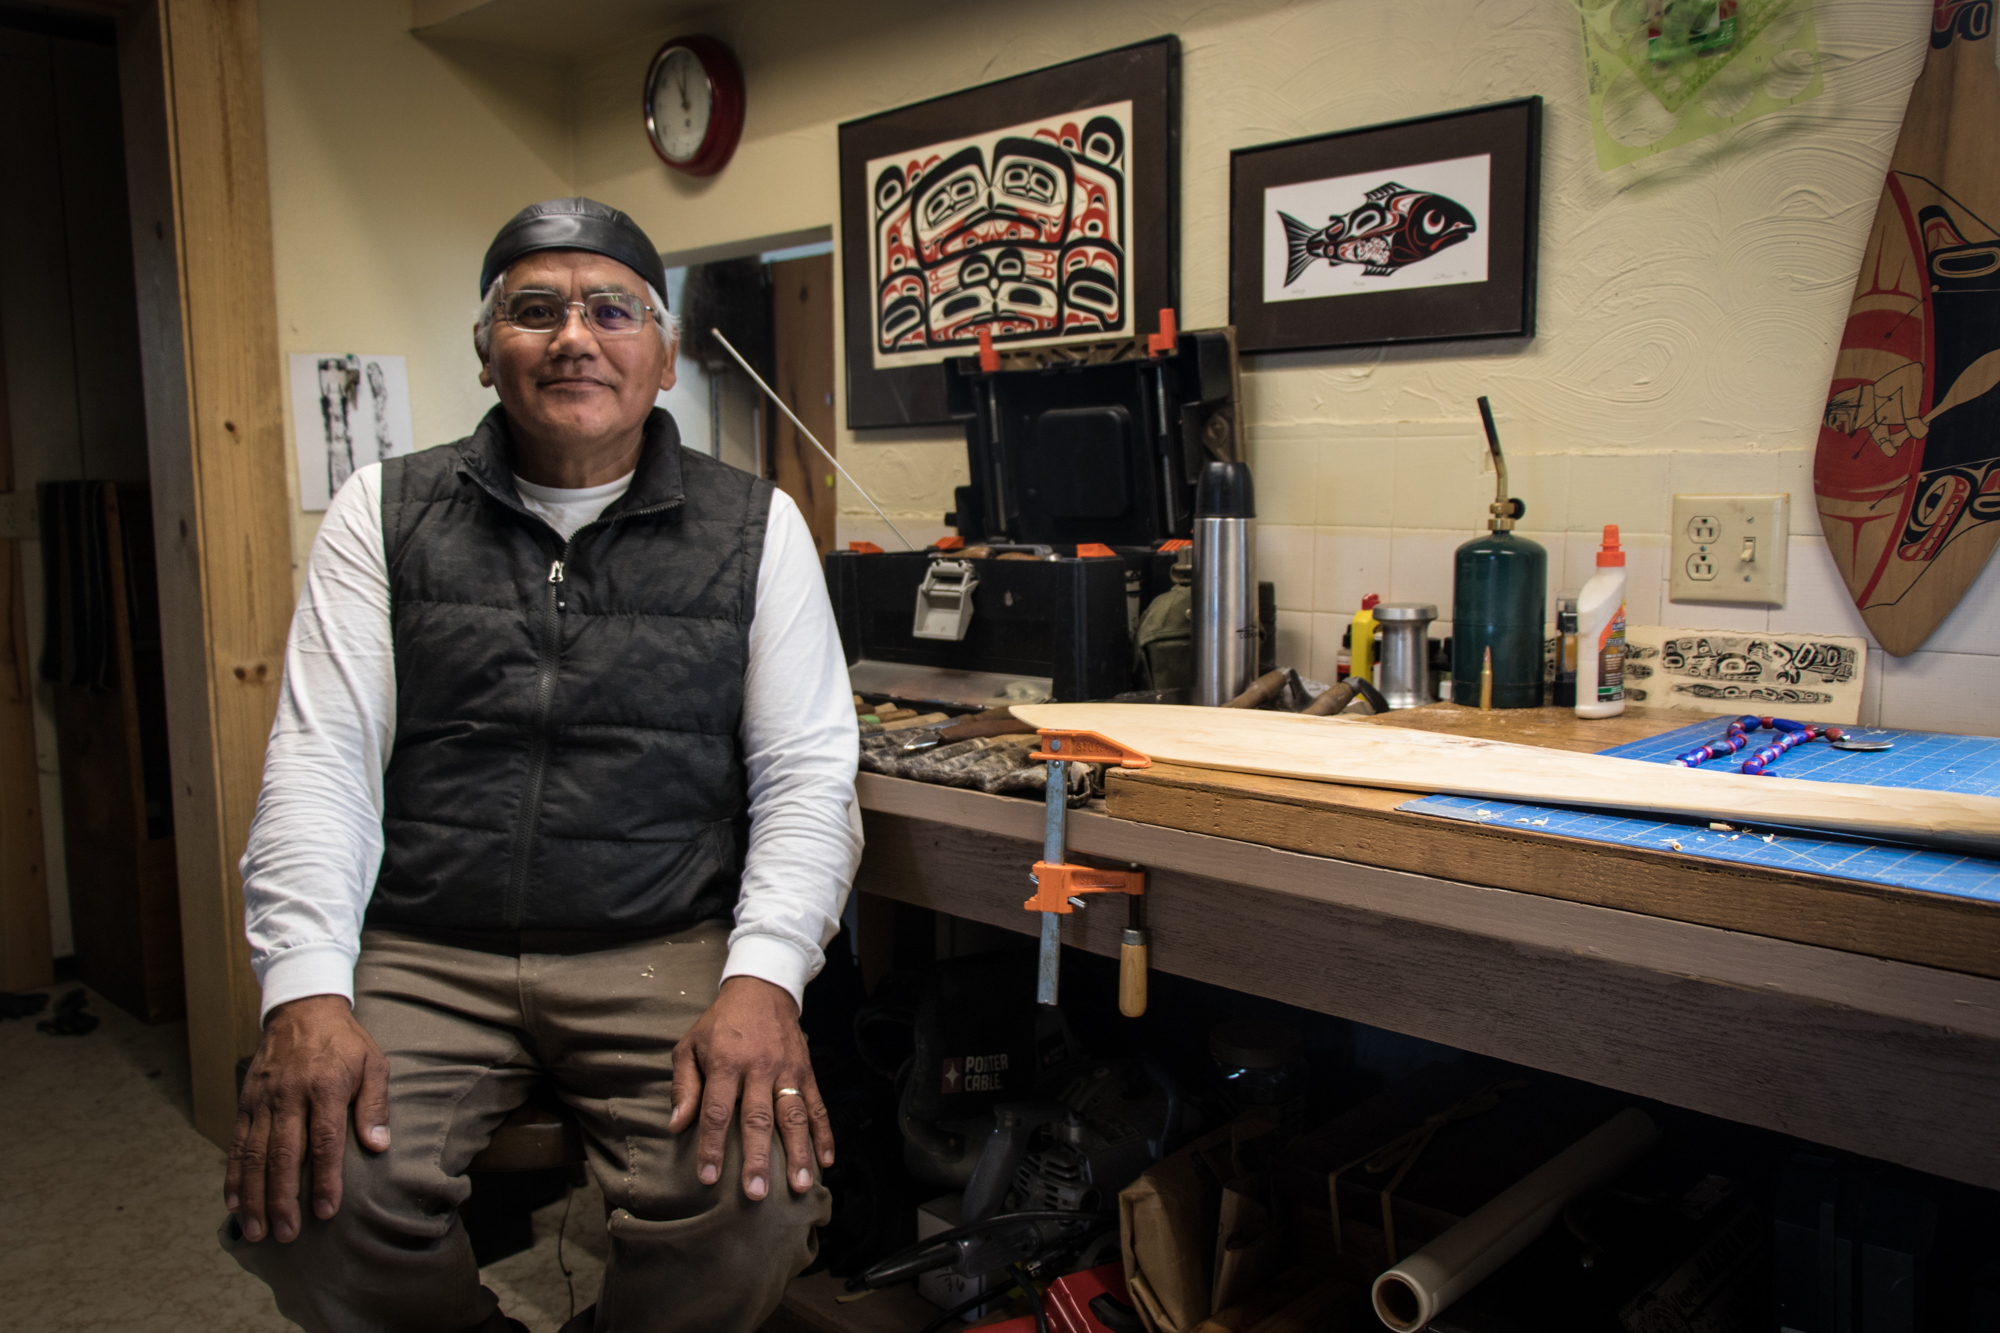 Wayne Price, master carver, , travels frequently between his home in Alaska and the Yukon, working with communities to facilitate their healing journeys through traditional Indigenous art forms.